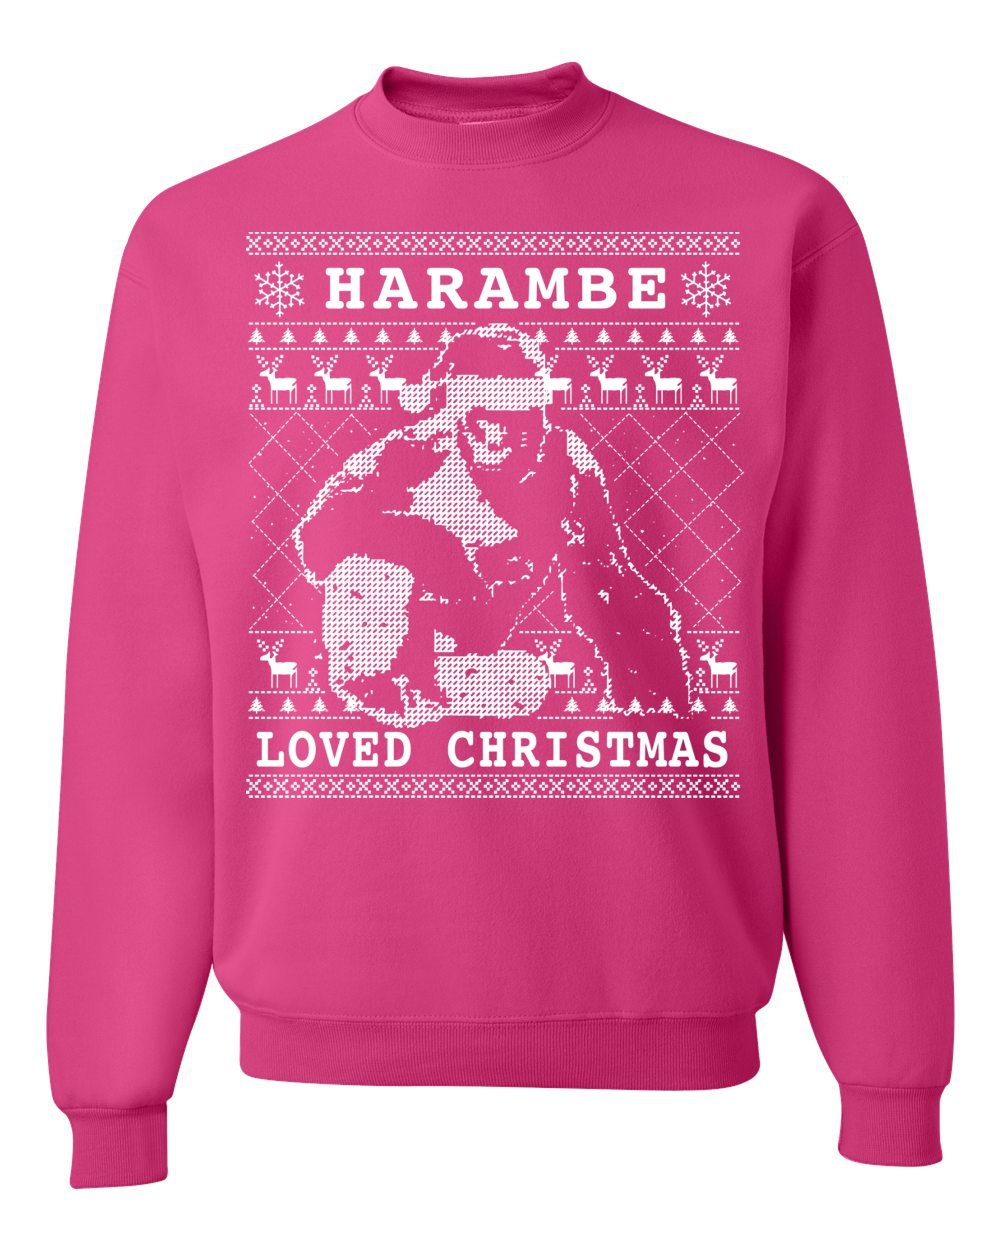 harambe loved christmas ugly christmas sweater unisex crewneck sweatshirt at amazon mens clothing store jpg 1000x1250